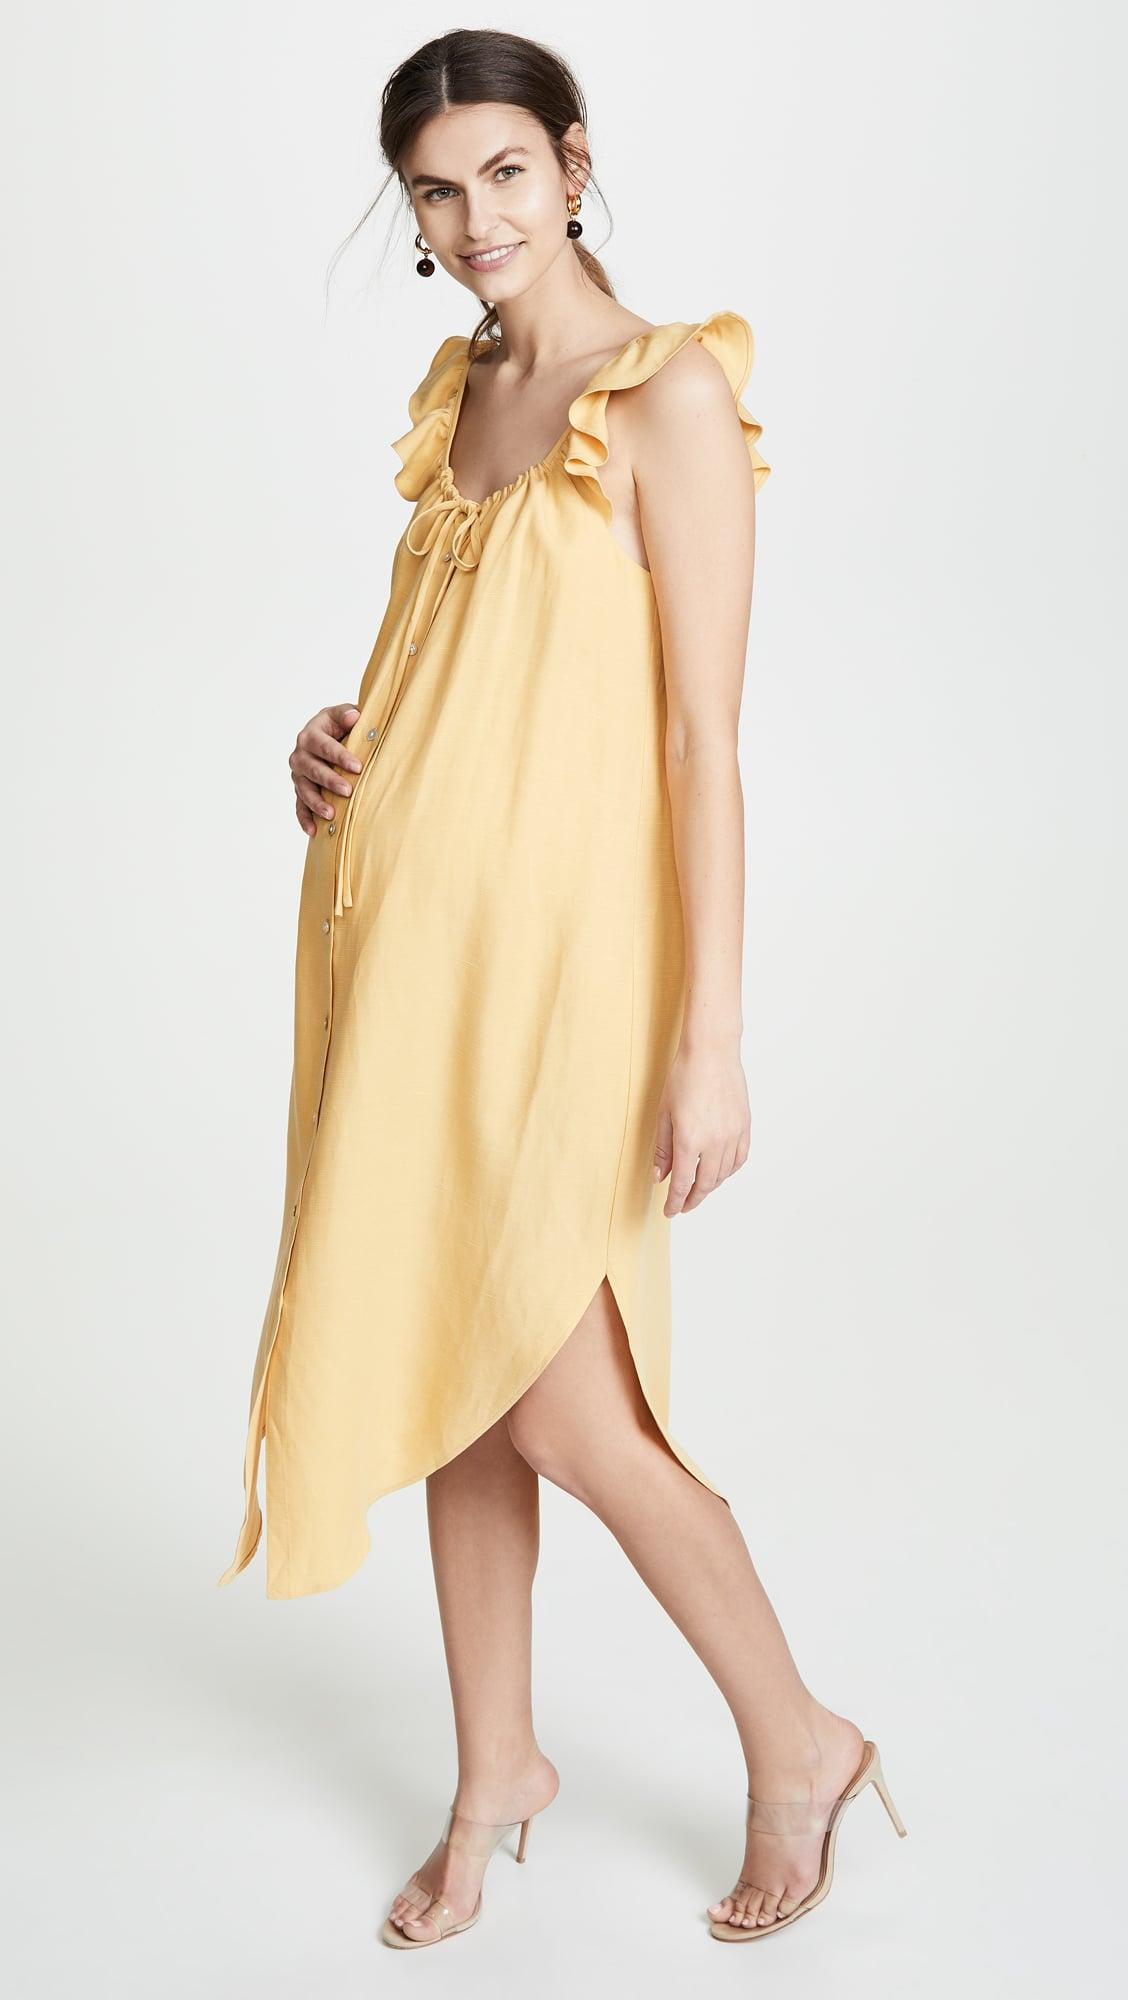 b24542fc77 These 11 Maternity Dresses Will Make You the Most Stylish Wedding Guest